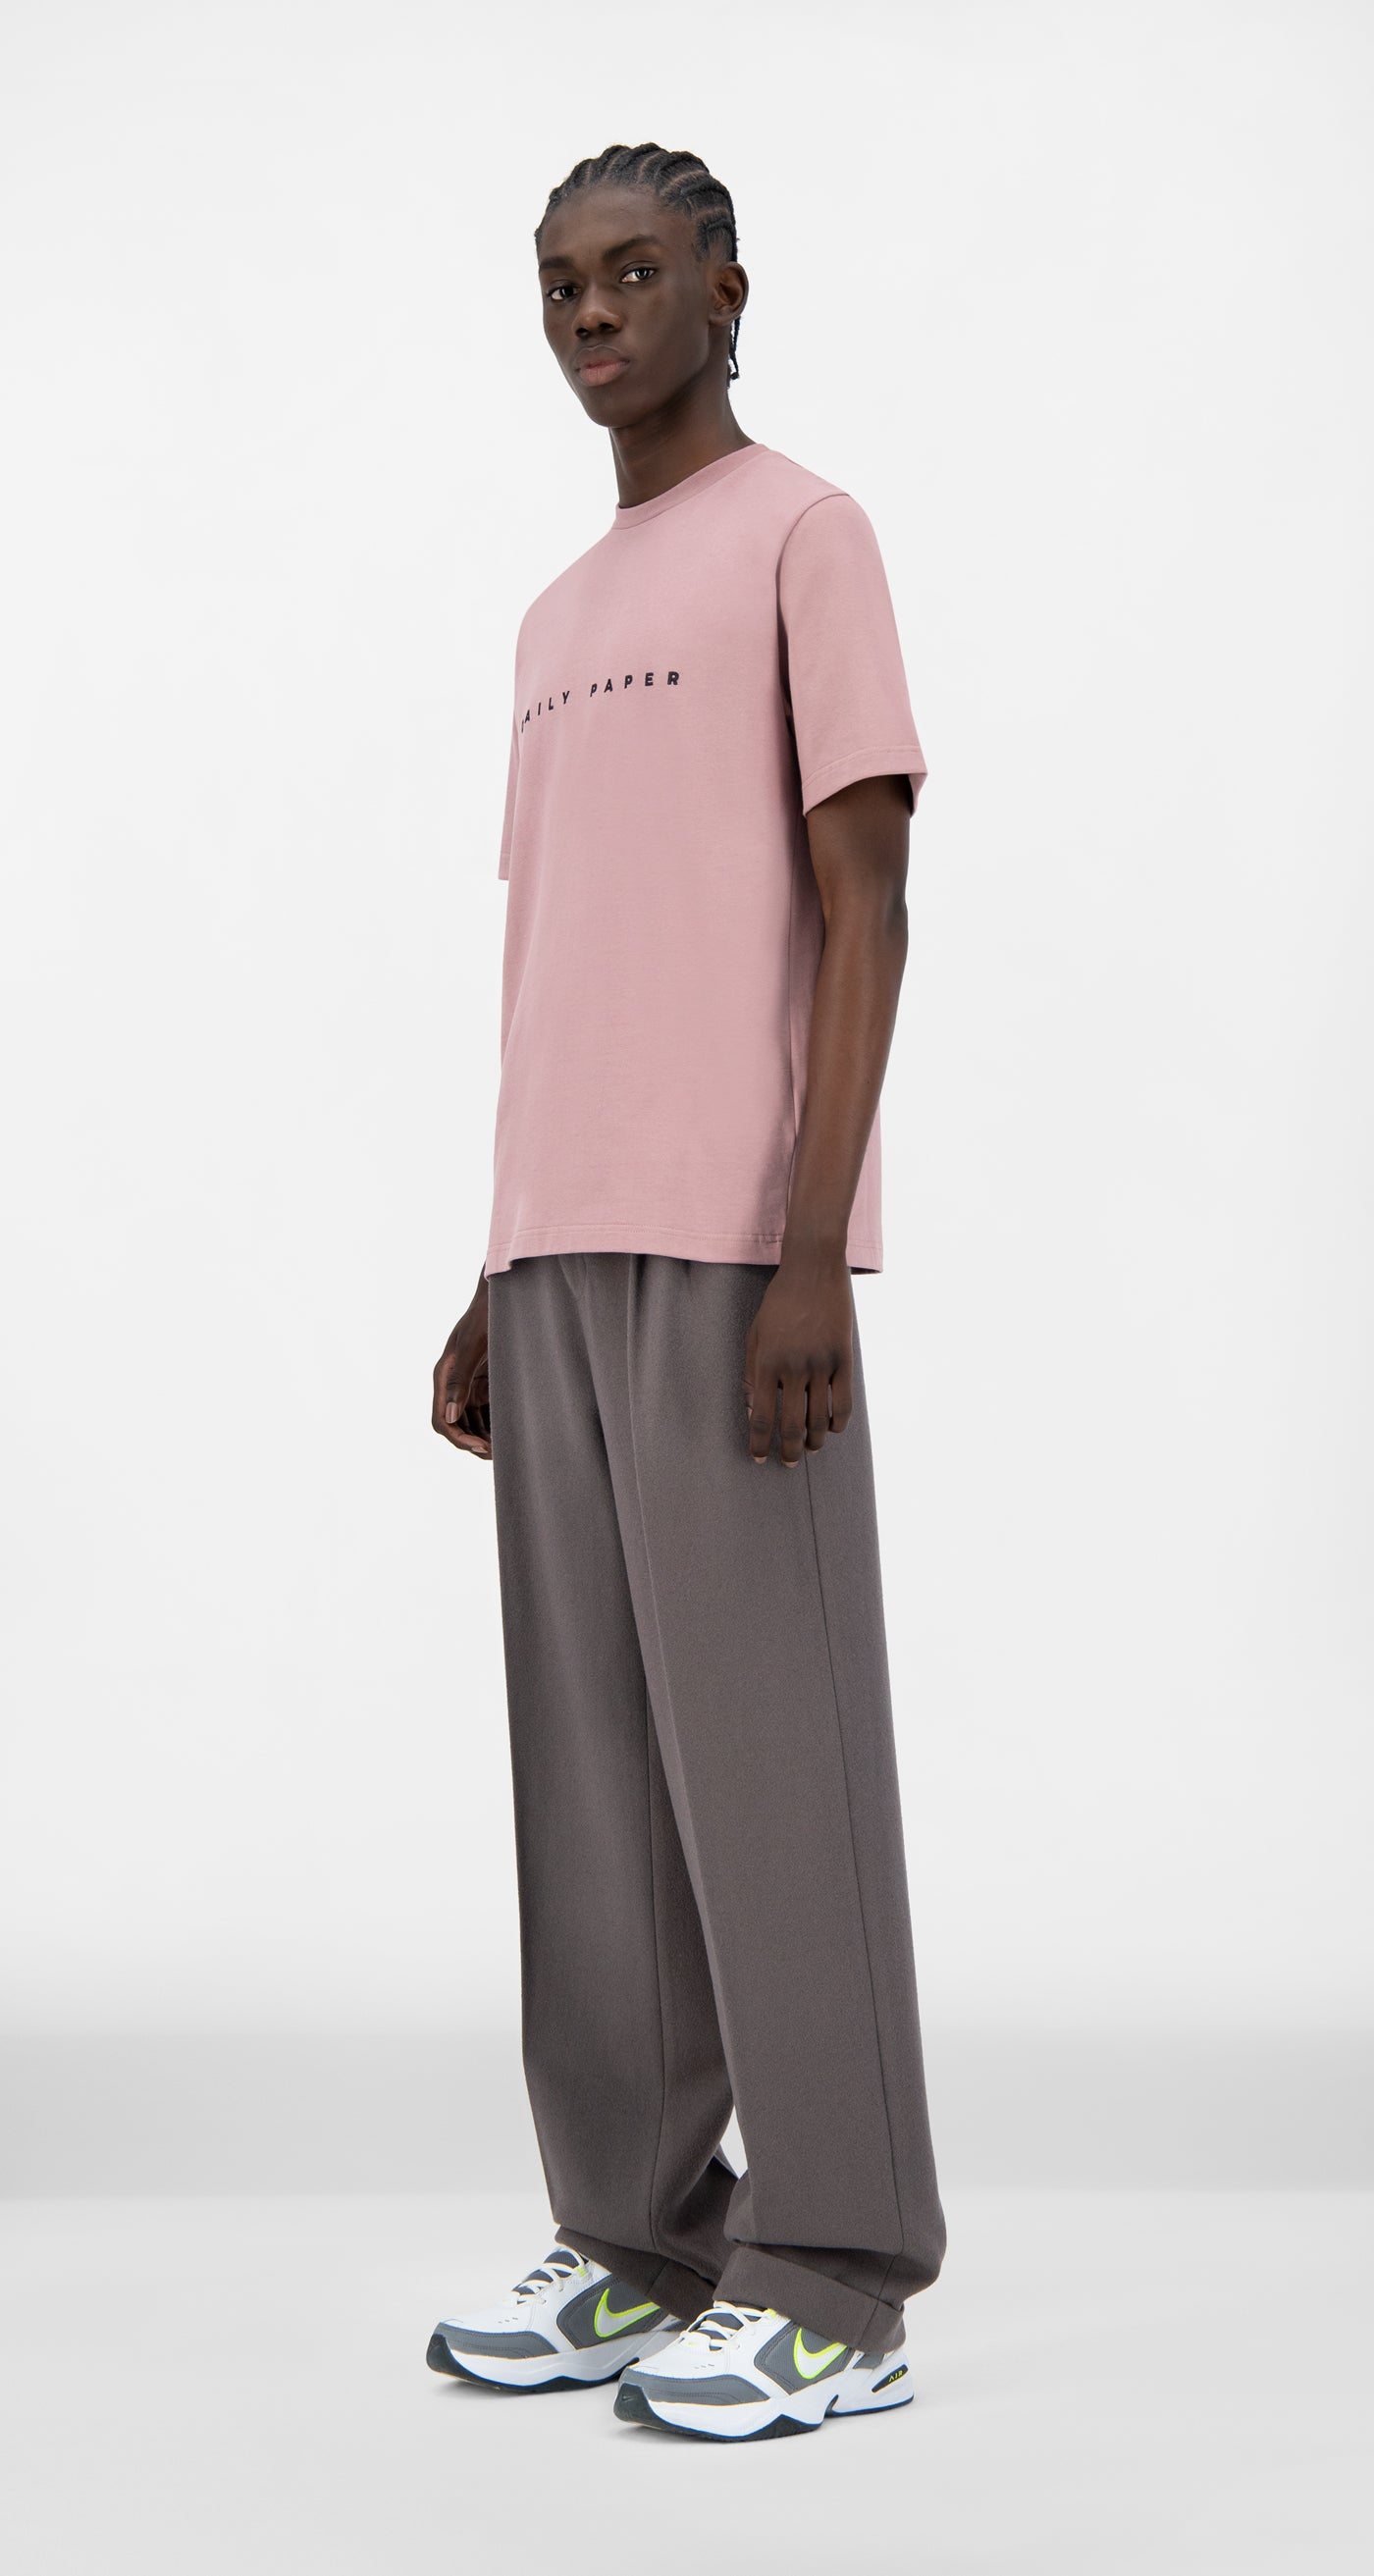 Daily Paper - Mauve Pink Alias T-Shirt - Men